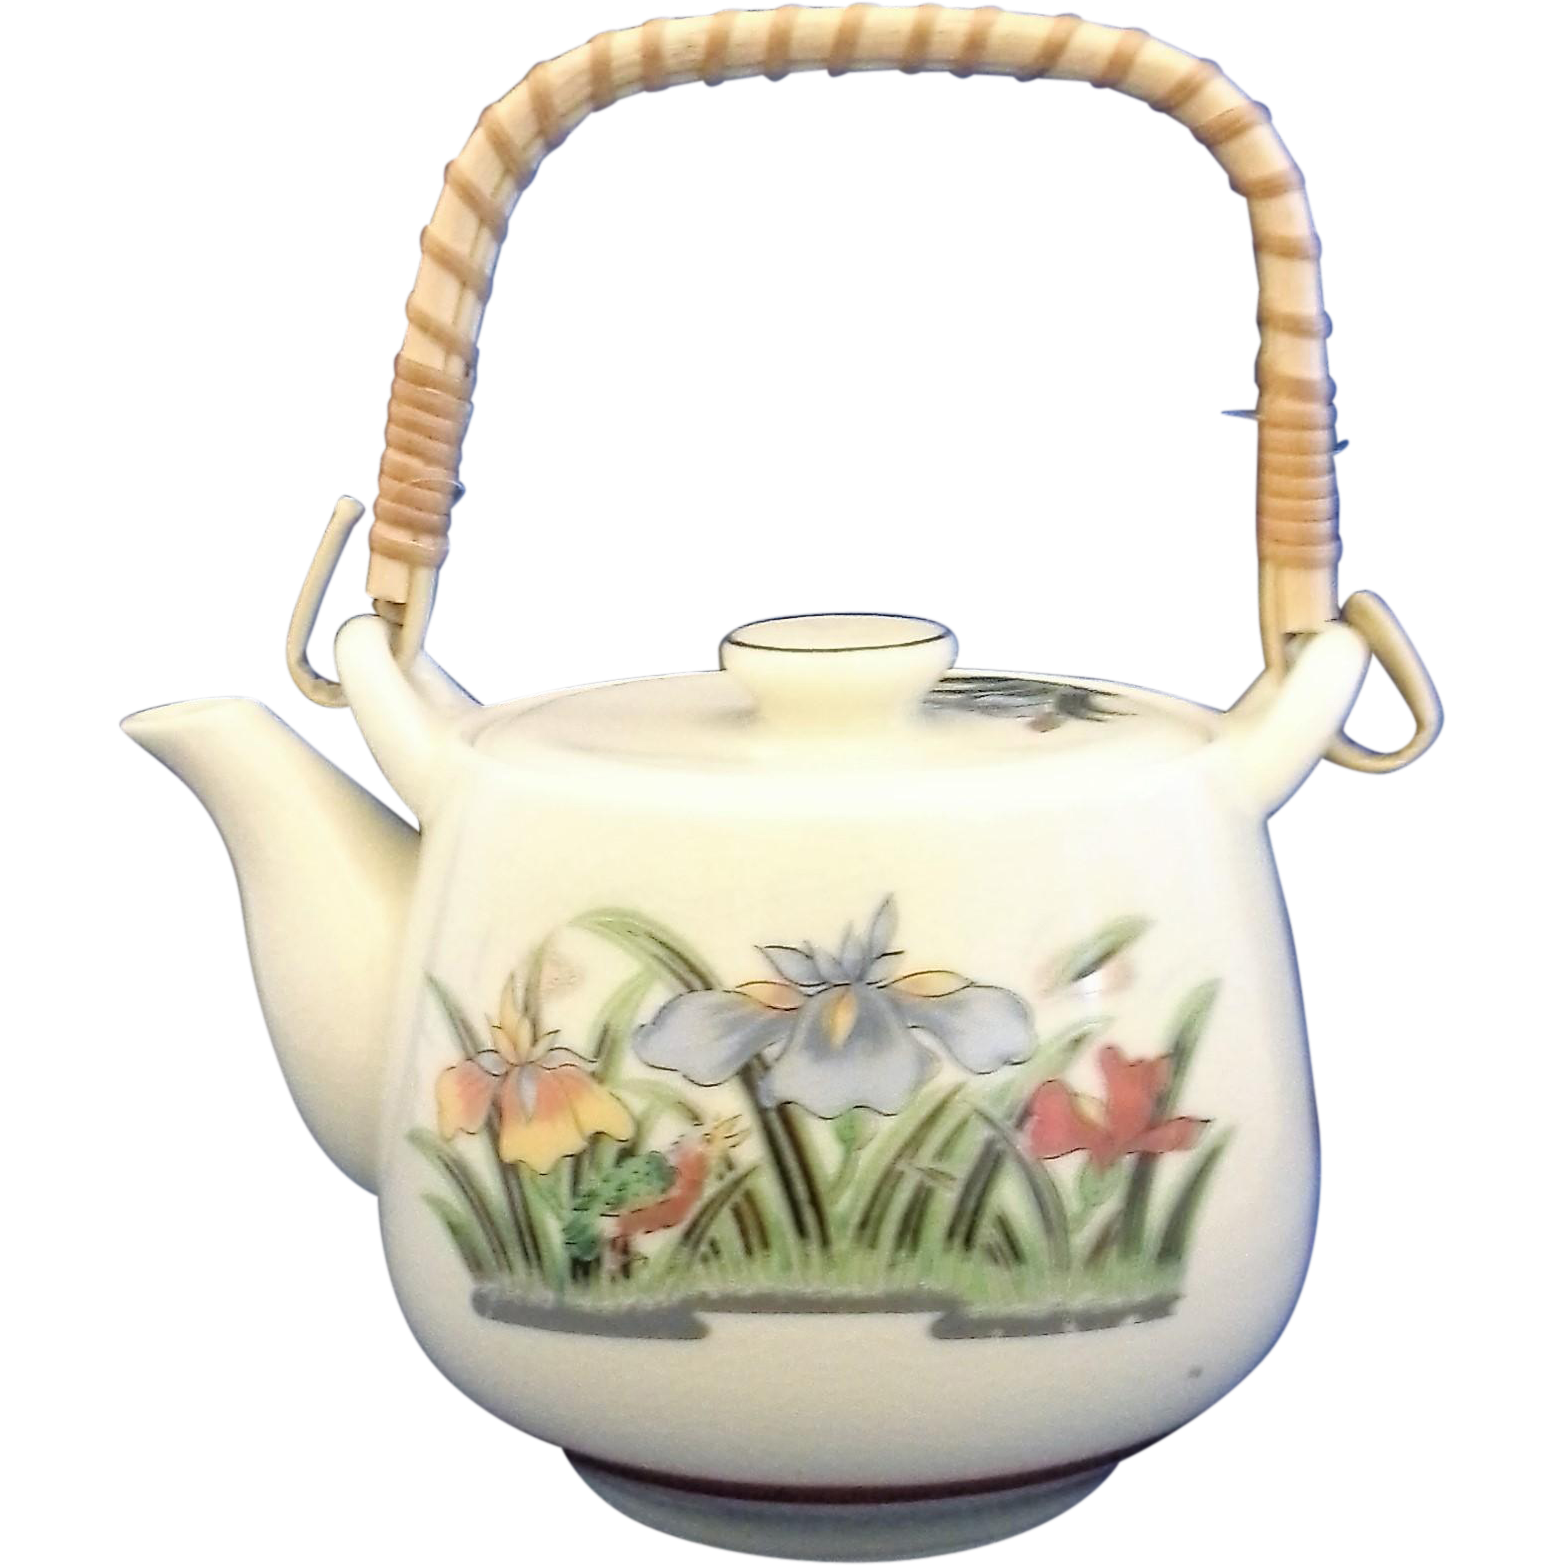 Small Japan Ceramic Teapot Iris Decoration Bamboo Handle 2 Cup